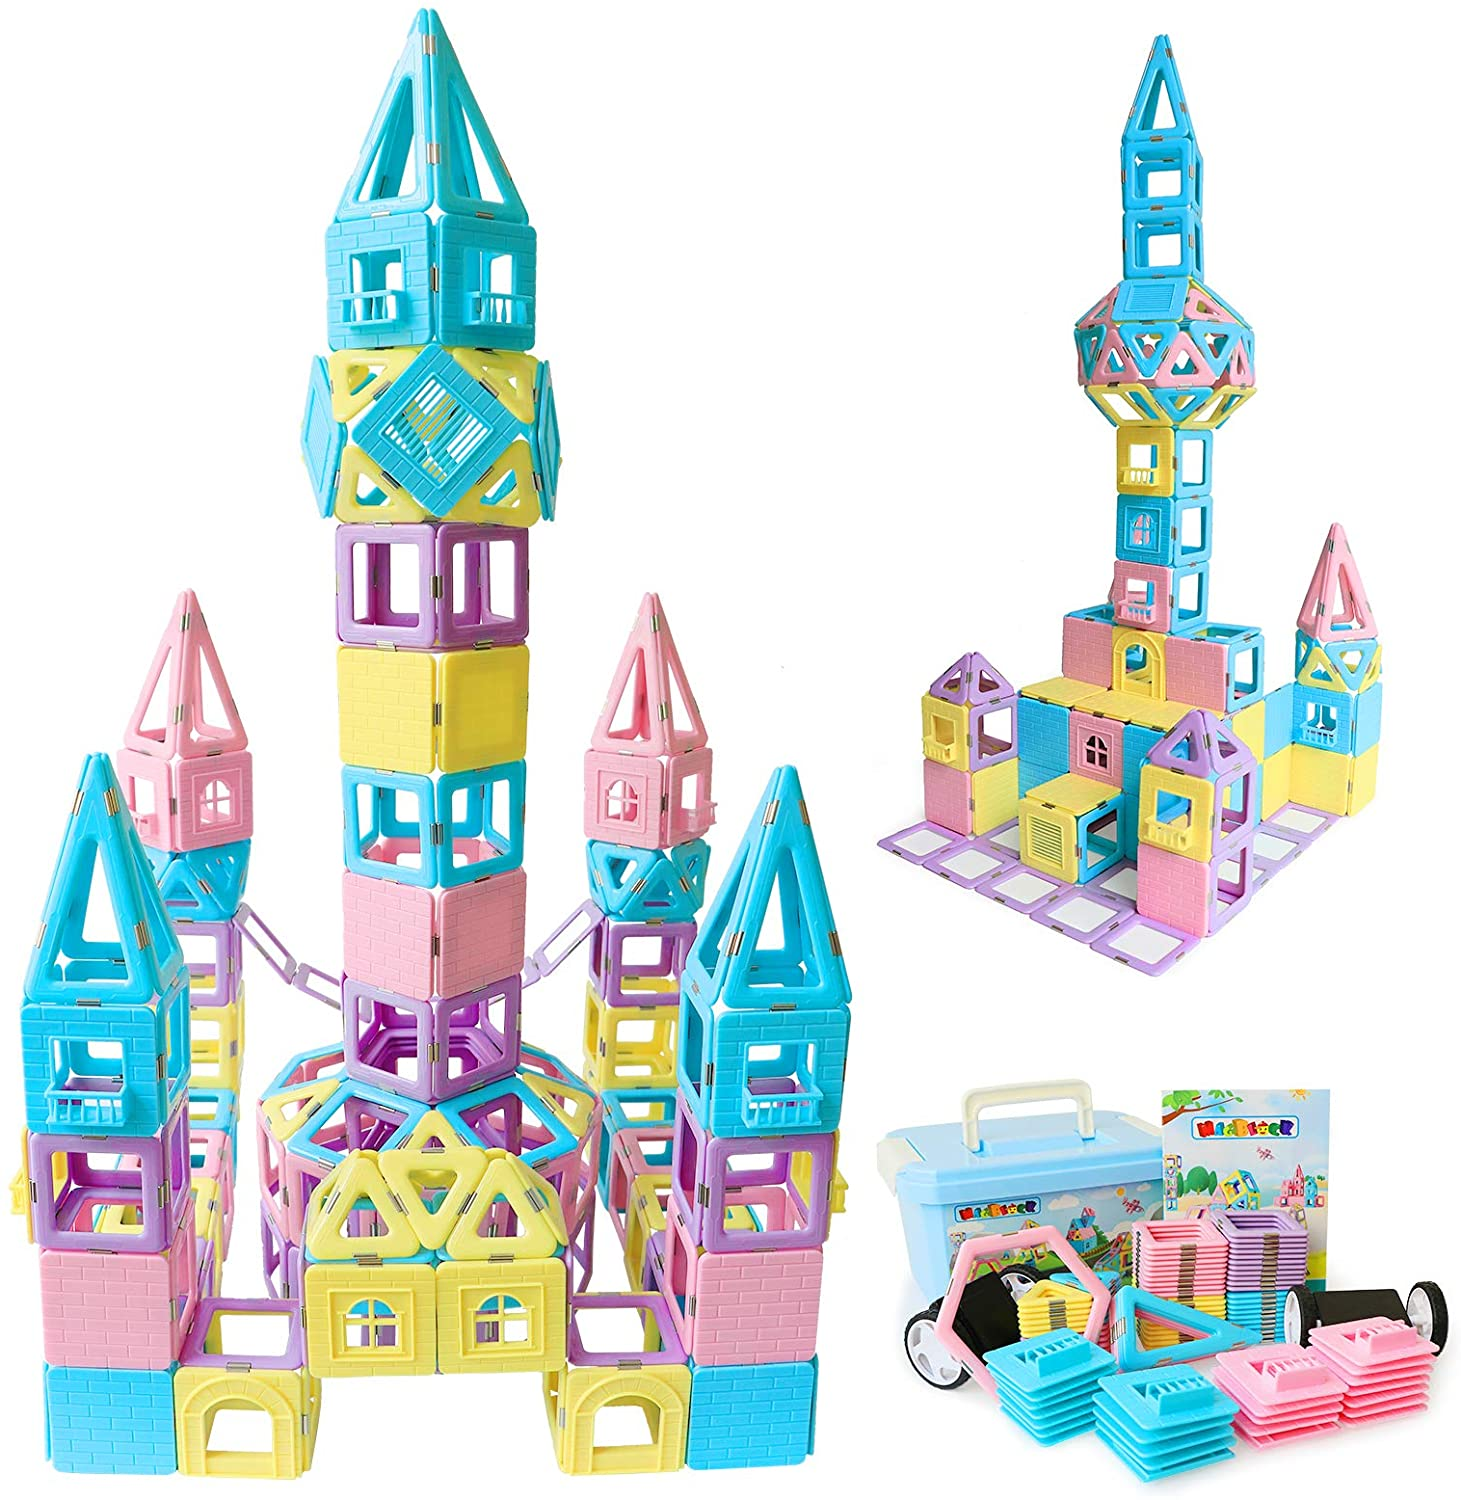 HLAOLA Magnetic Blocks Upgrade Magnetic Building Blocks Magnetic Building Tiles Set for Kids Magnetic Educational Stacking Blocks Toys for 3 4 5 6 7 Years Old Boys Girls Expansion package -42 pcs